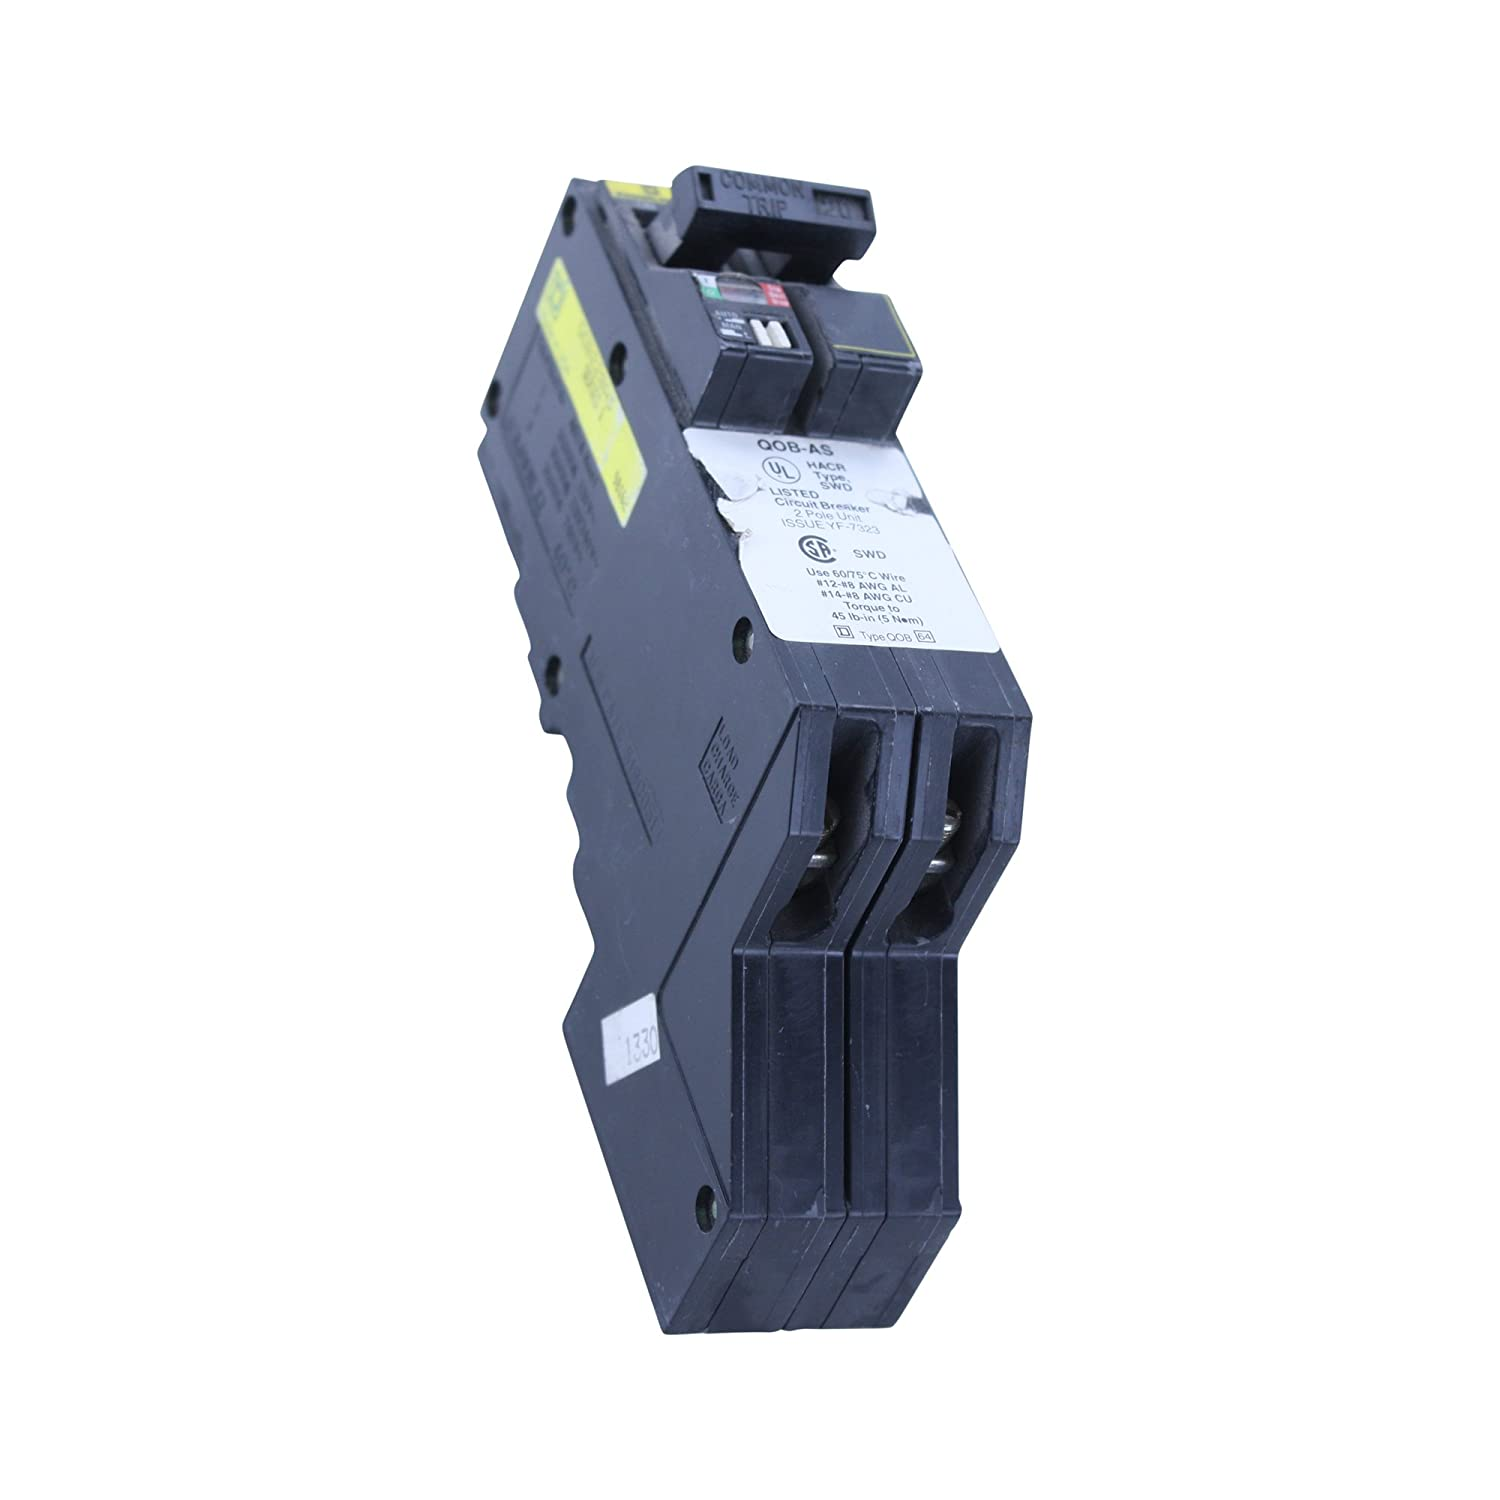 Qob220as Square D Powerlink 20a 2p Remote Breaker 20 Amp Qob 120 240 Two Pole 30 Circuit Hom230cp By Schneider Electric Volt 2